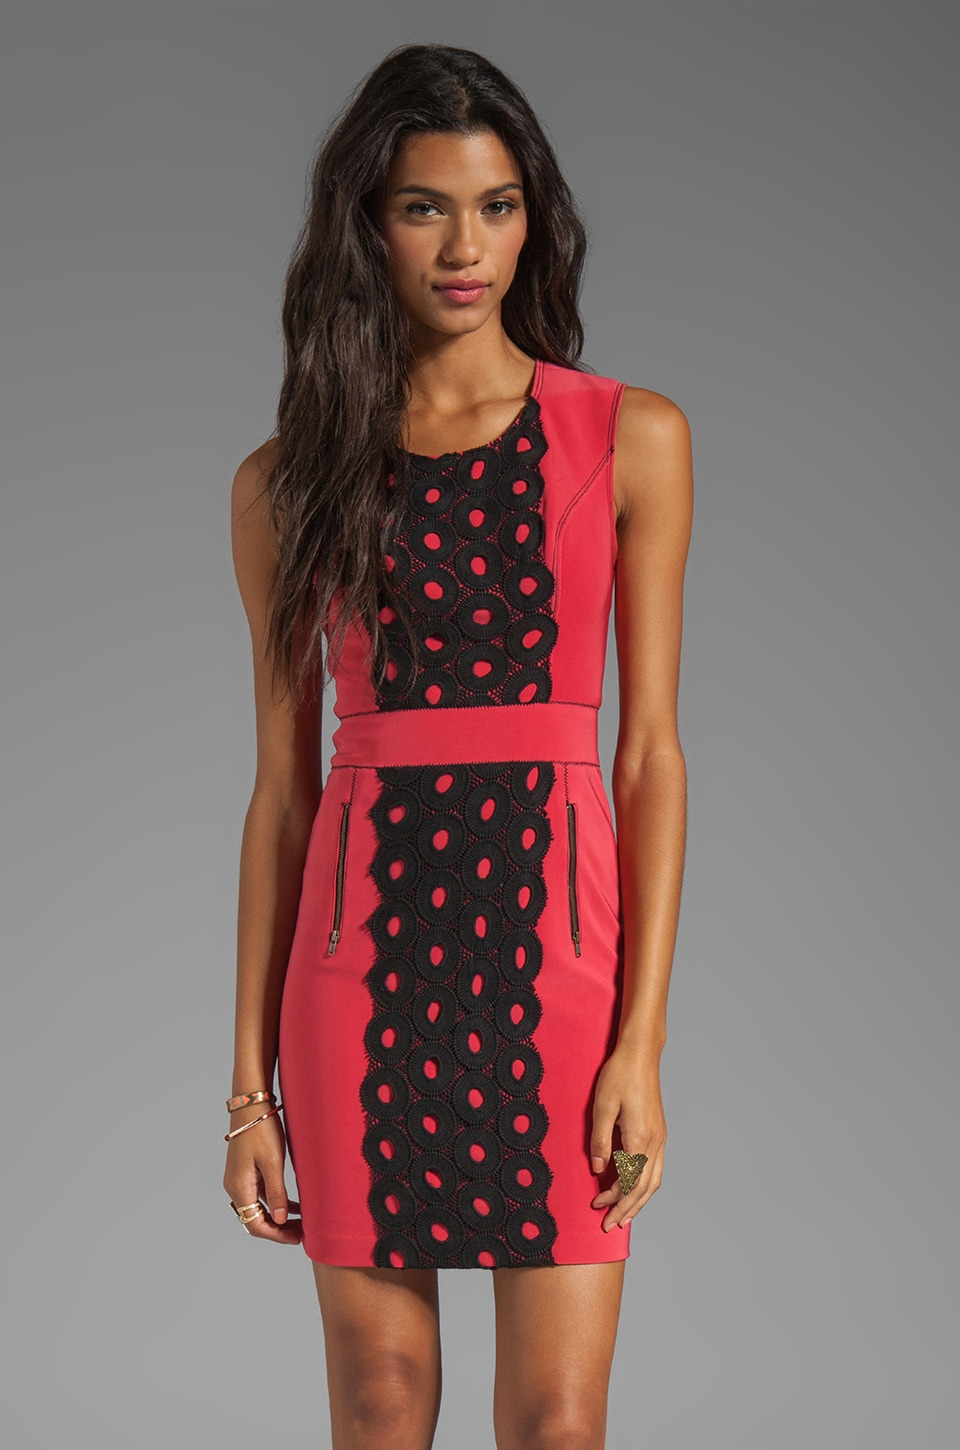 Tracy Reese Lightweight Neoprene Lace Front Shift Dress in Cayenne